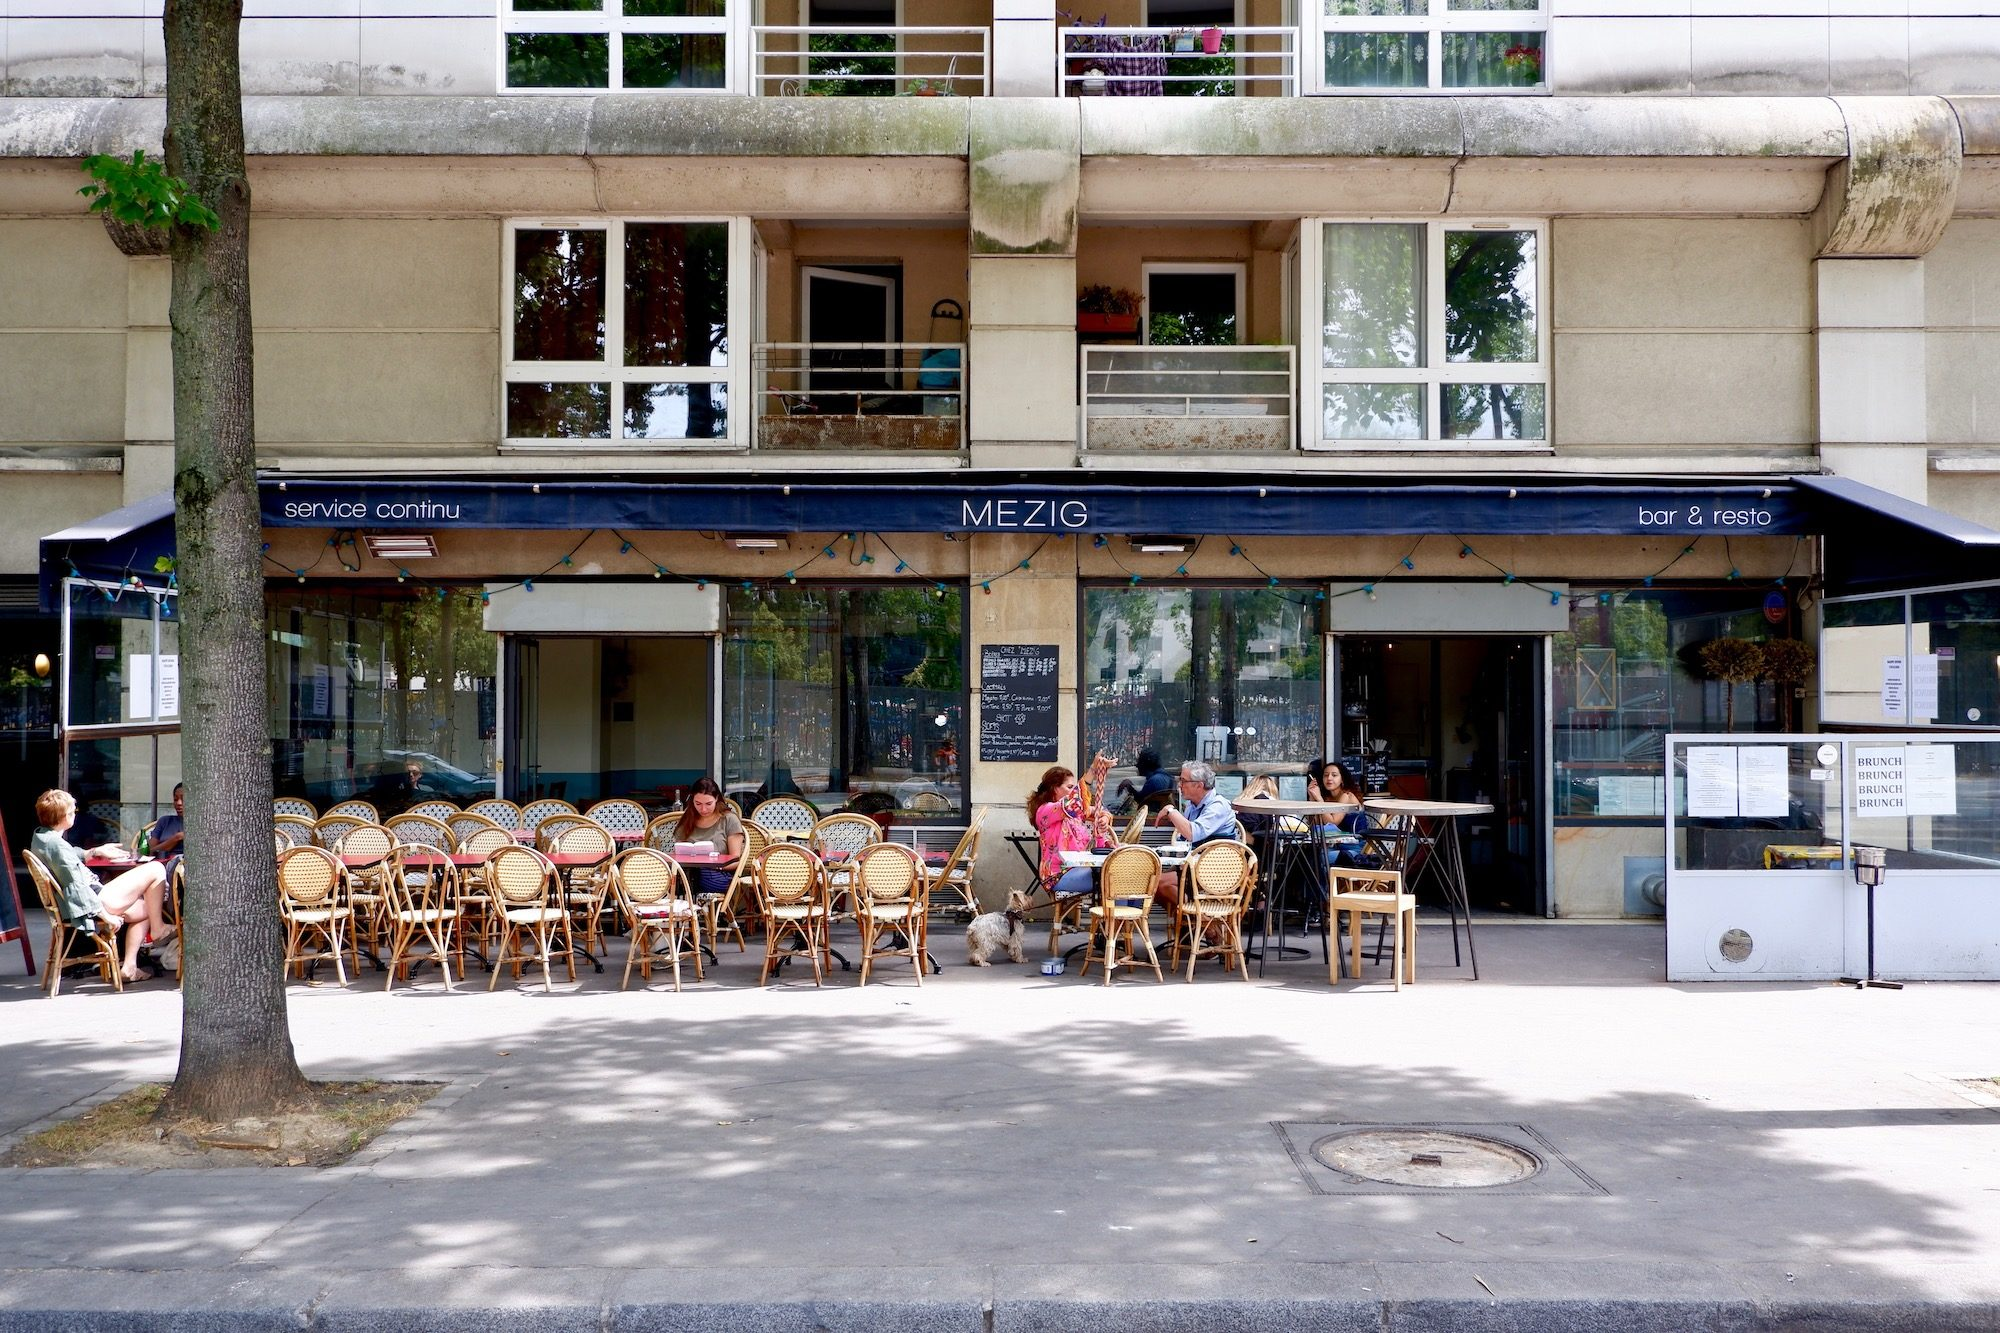 Mezig restaurant close to the canal in Paris with its sunny terrace.